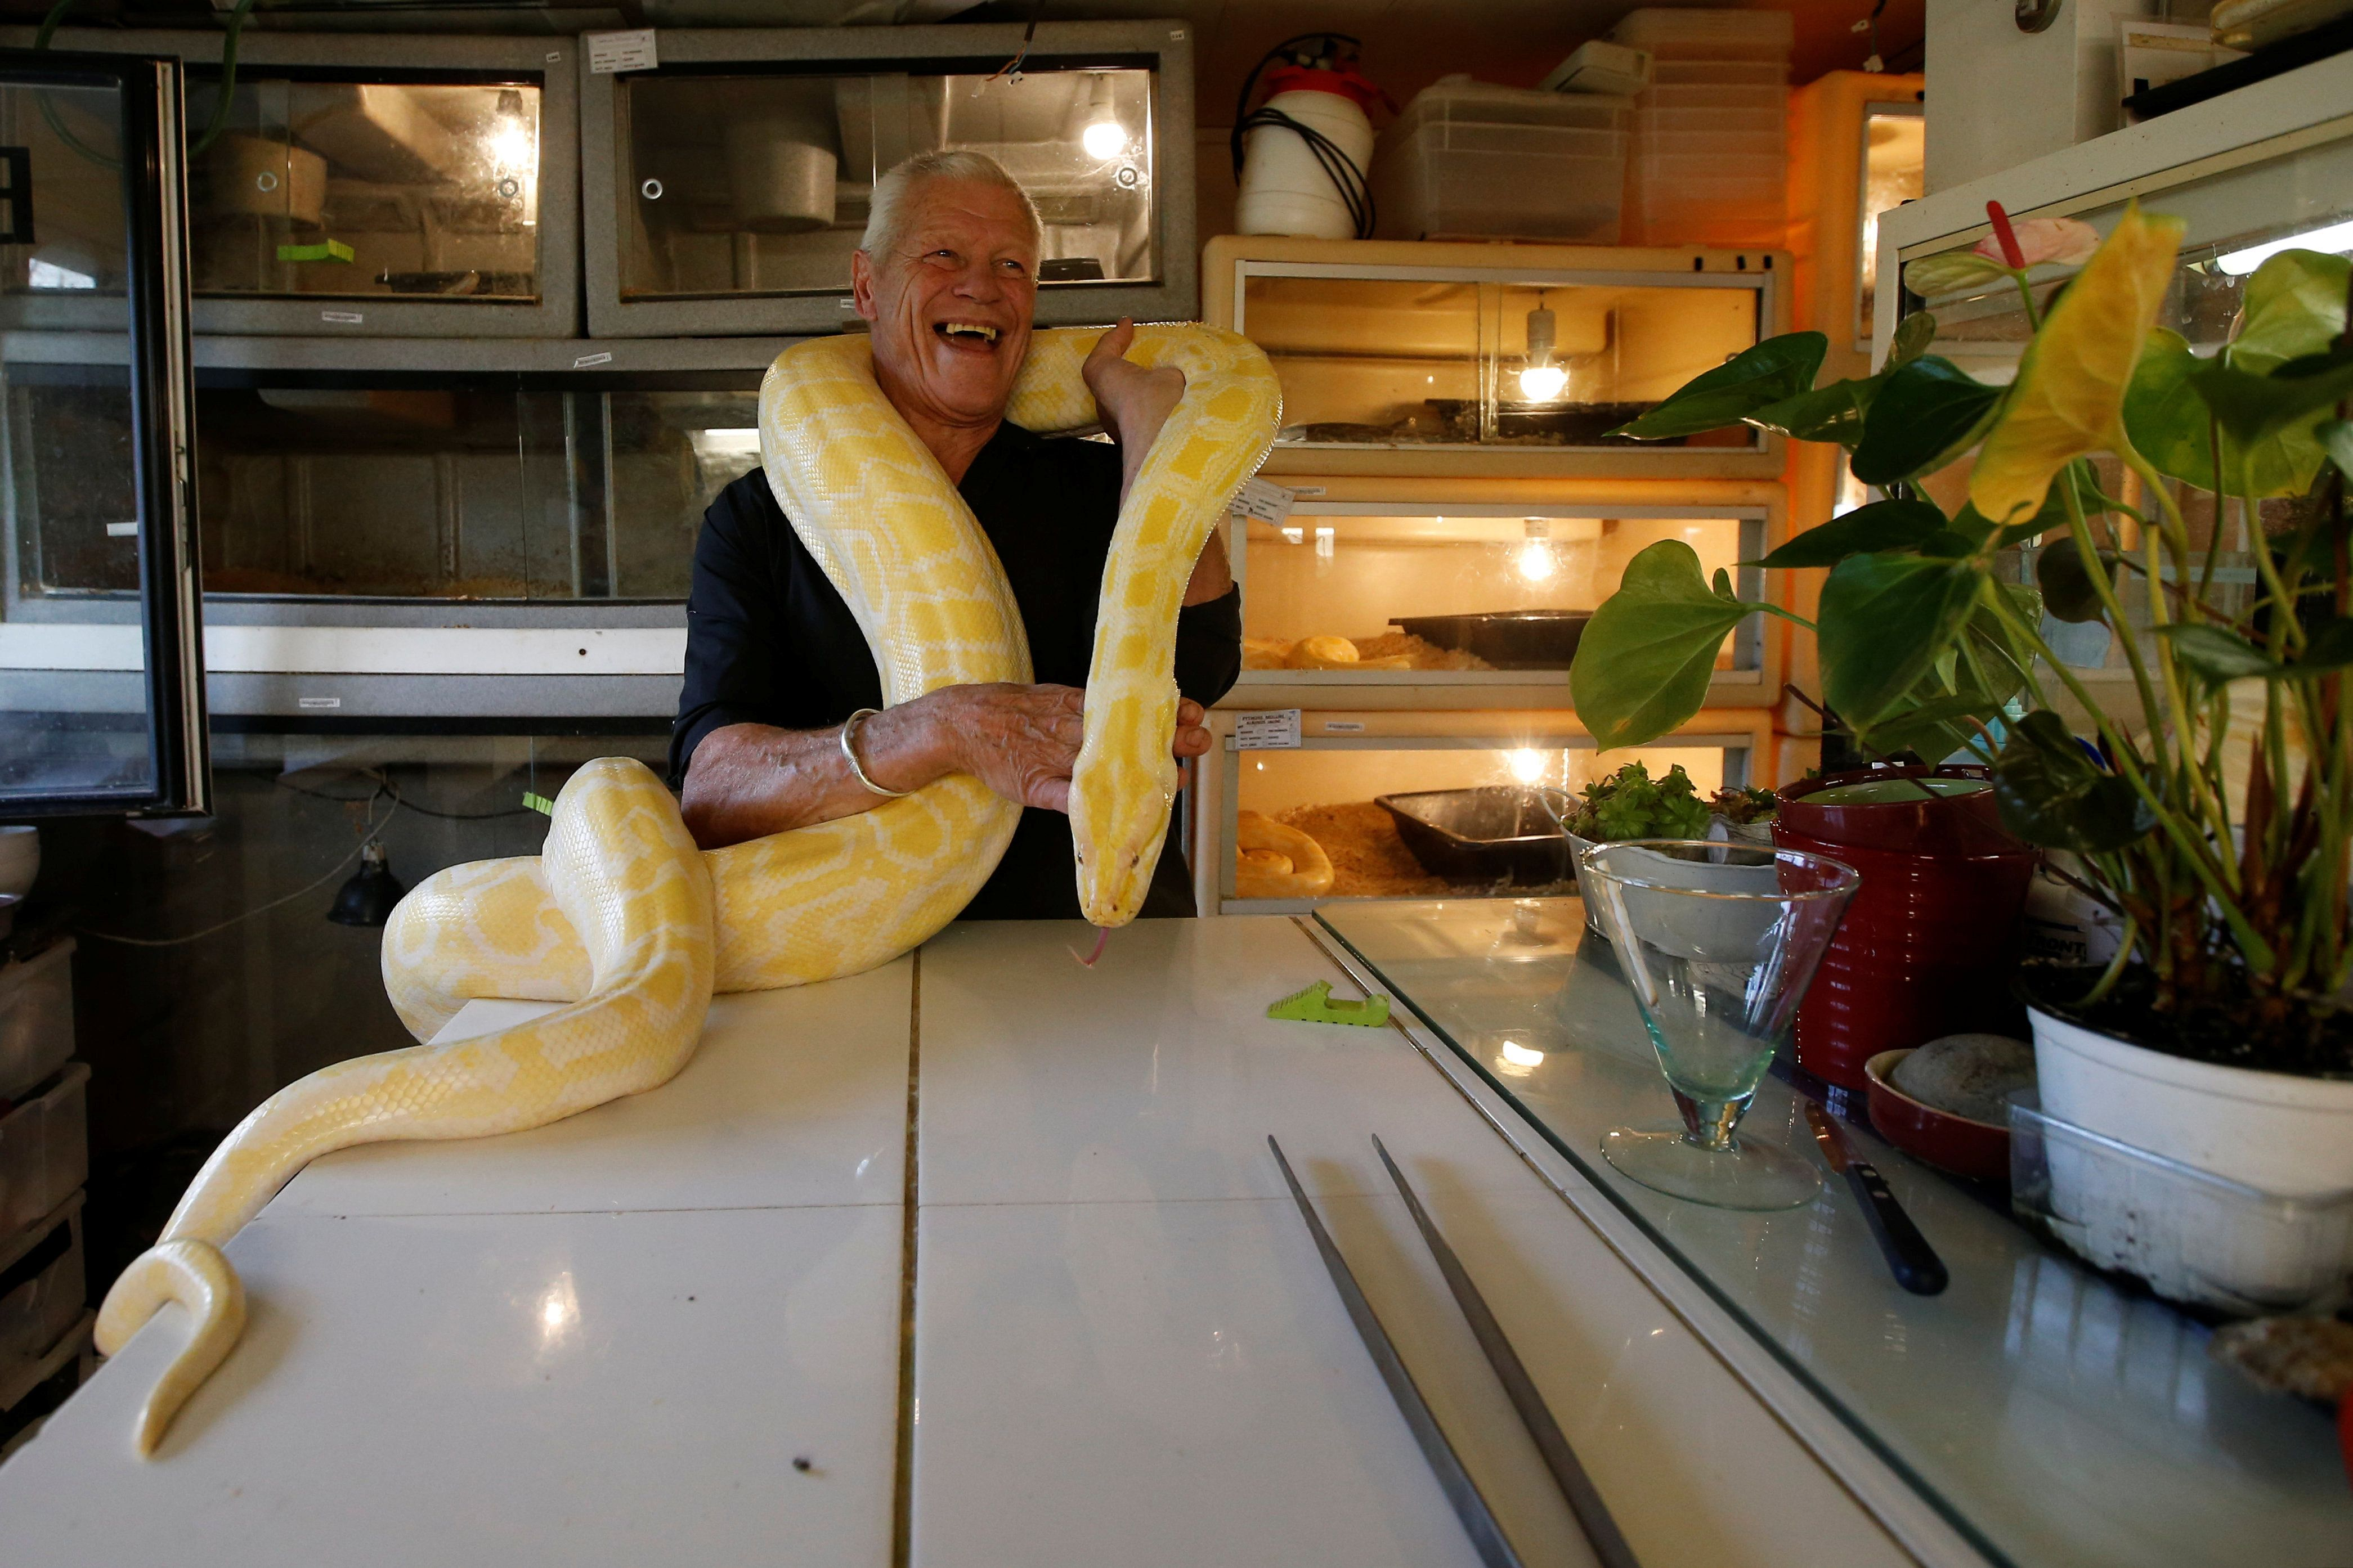 Philippe Gillet, 67 year-old Frenchman who lives with more than 400 reptiles and tamed alligators, poses with a python in his house in Coueron near Nantes, France September 19, 2018. Picture taken September 19, 2018. REUTERS/Stephane Mahe